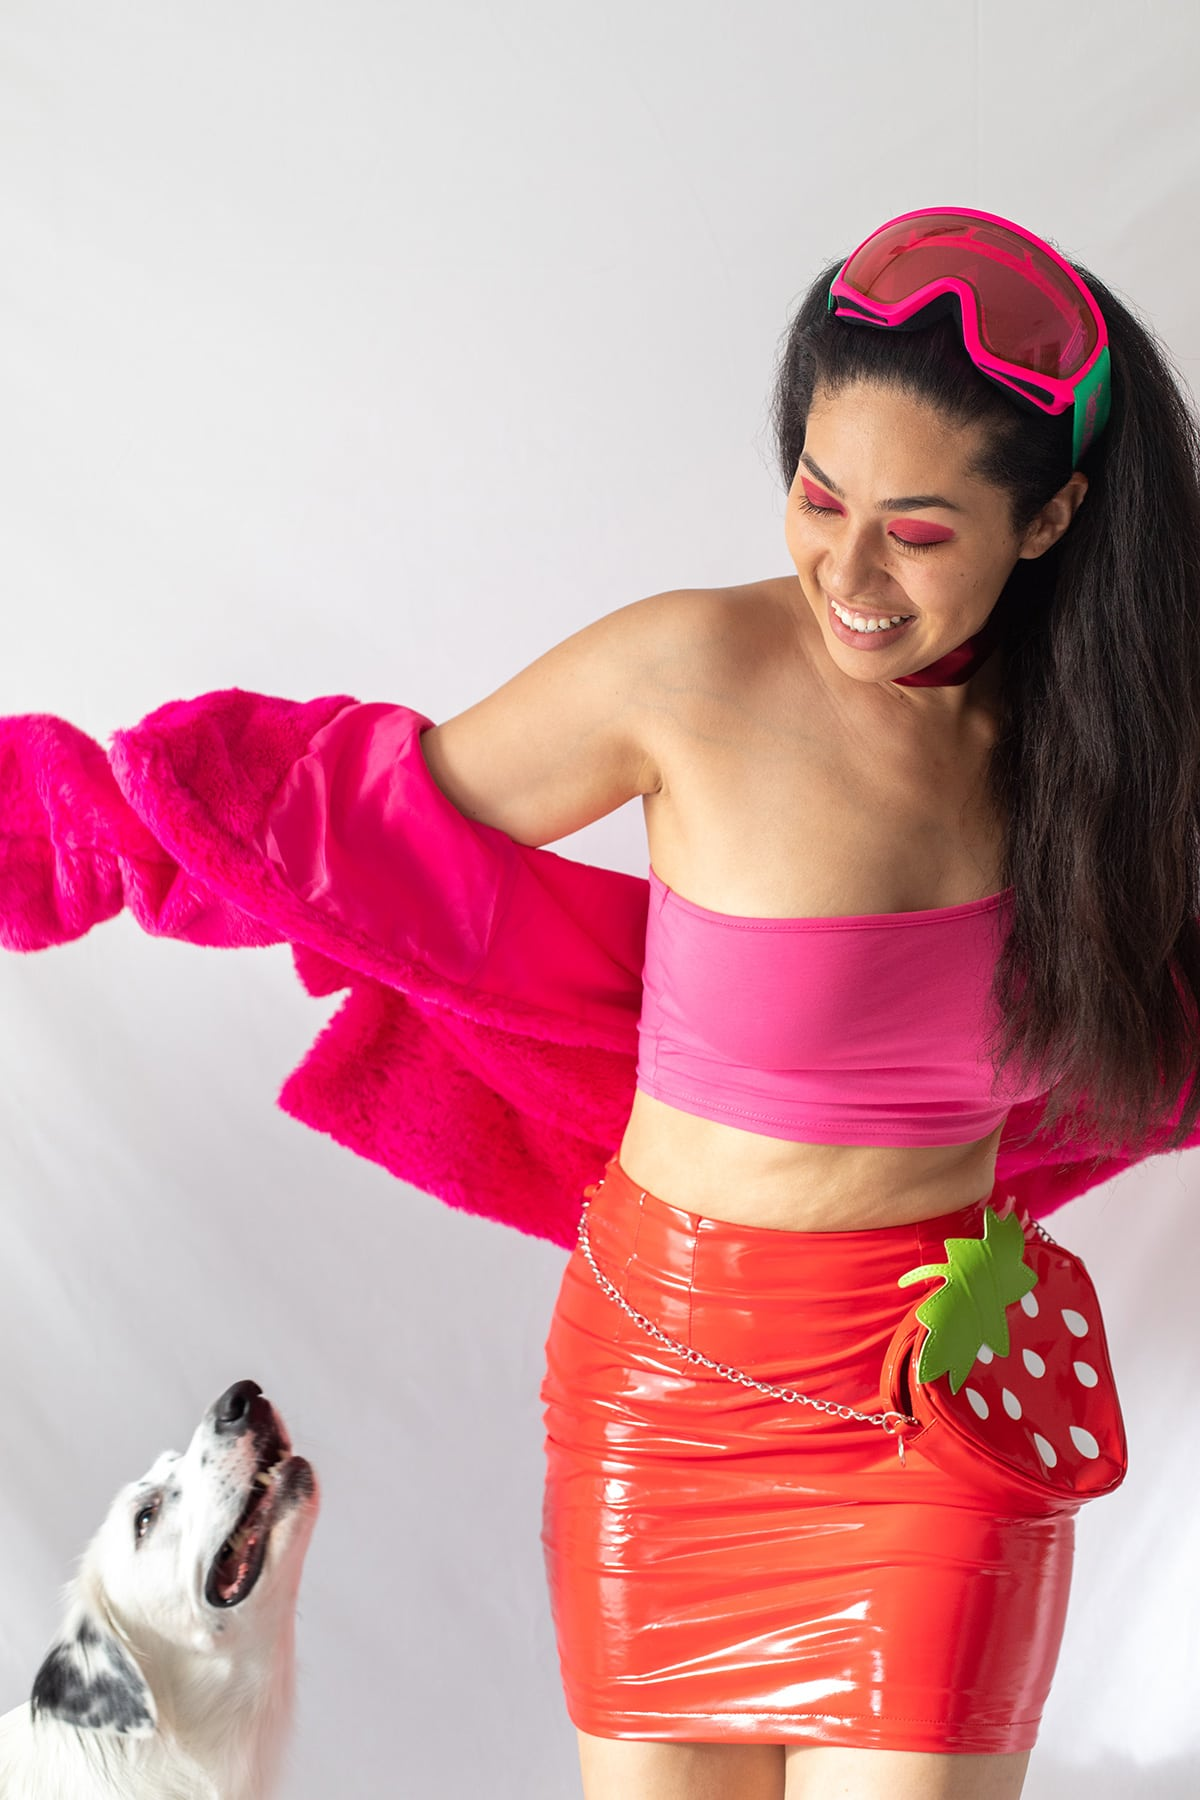 Doja Cat Watermelon Costume : watermelon, costume, Costume, Inspirational, Women, Edition, Curate